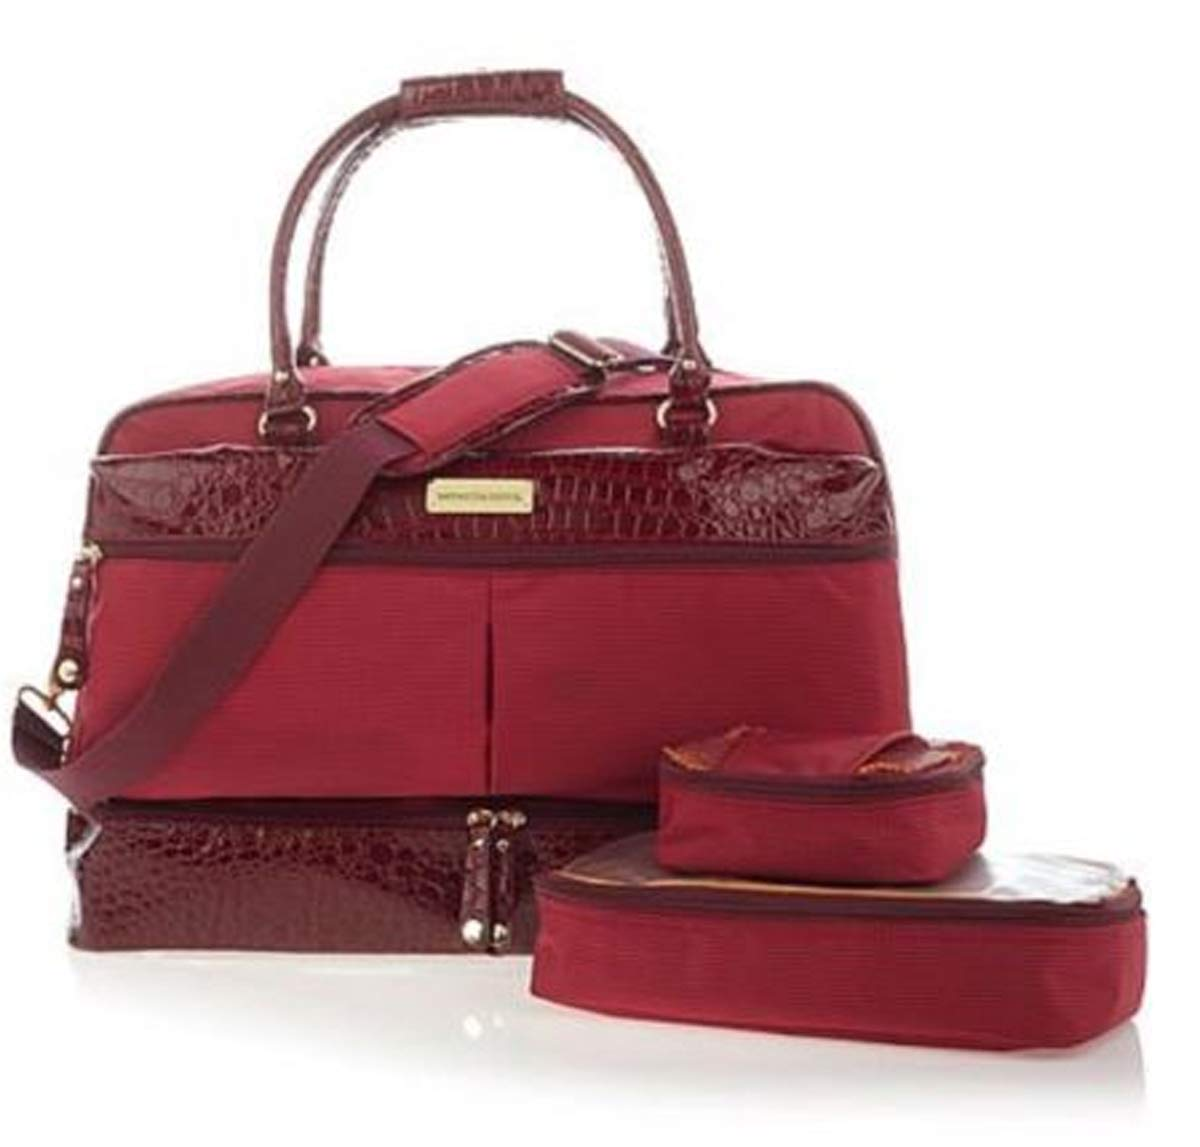 Samantha Brown, Drop Bottom Satchel with 2 Zippered Cubes, Burgundy by Samantha Brown